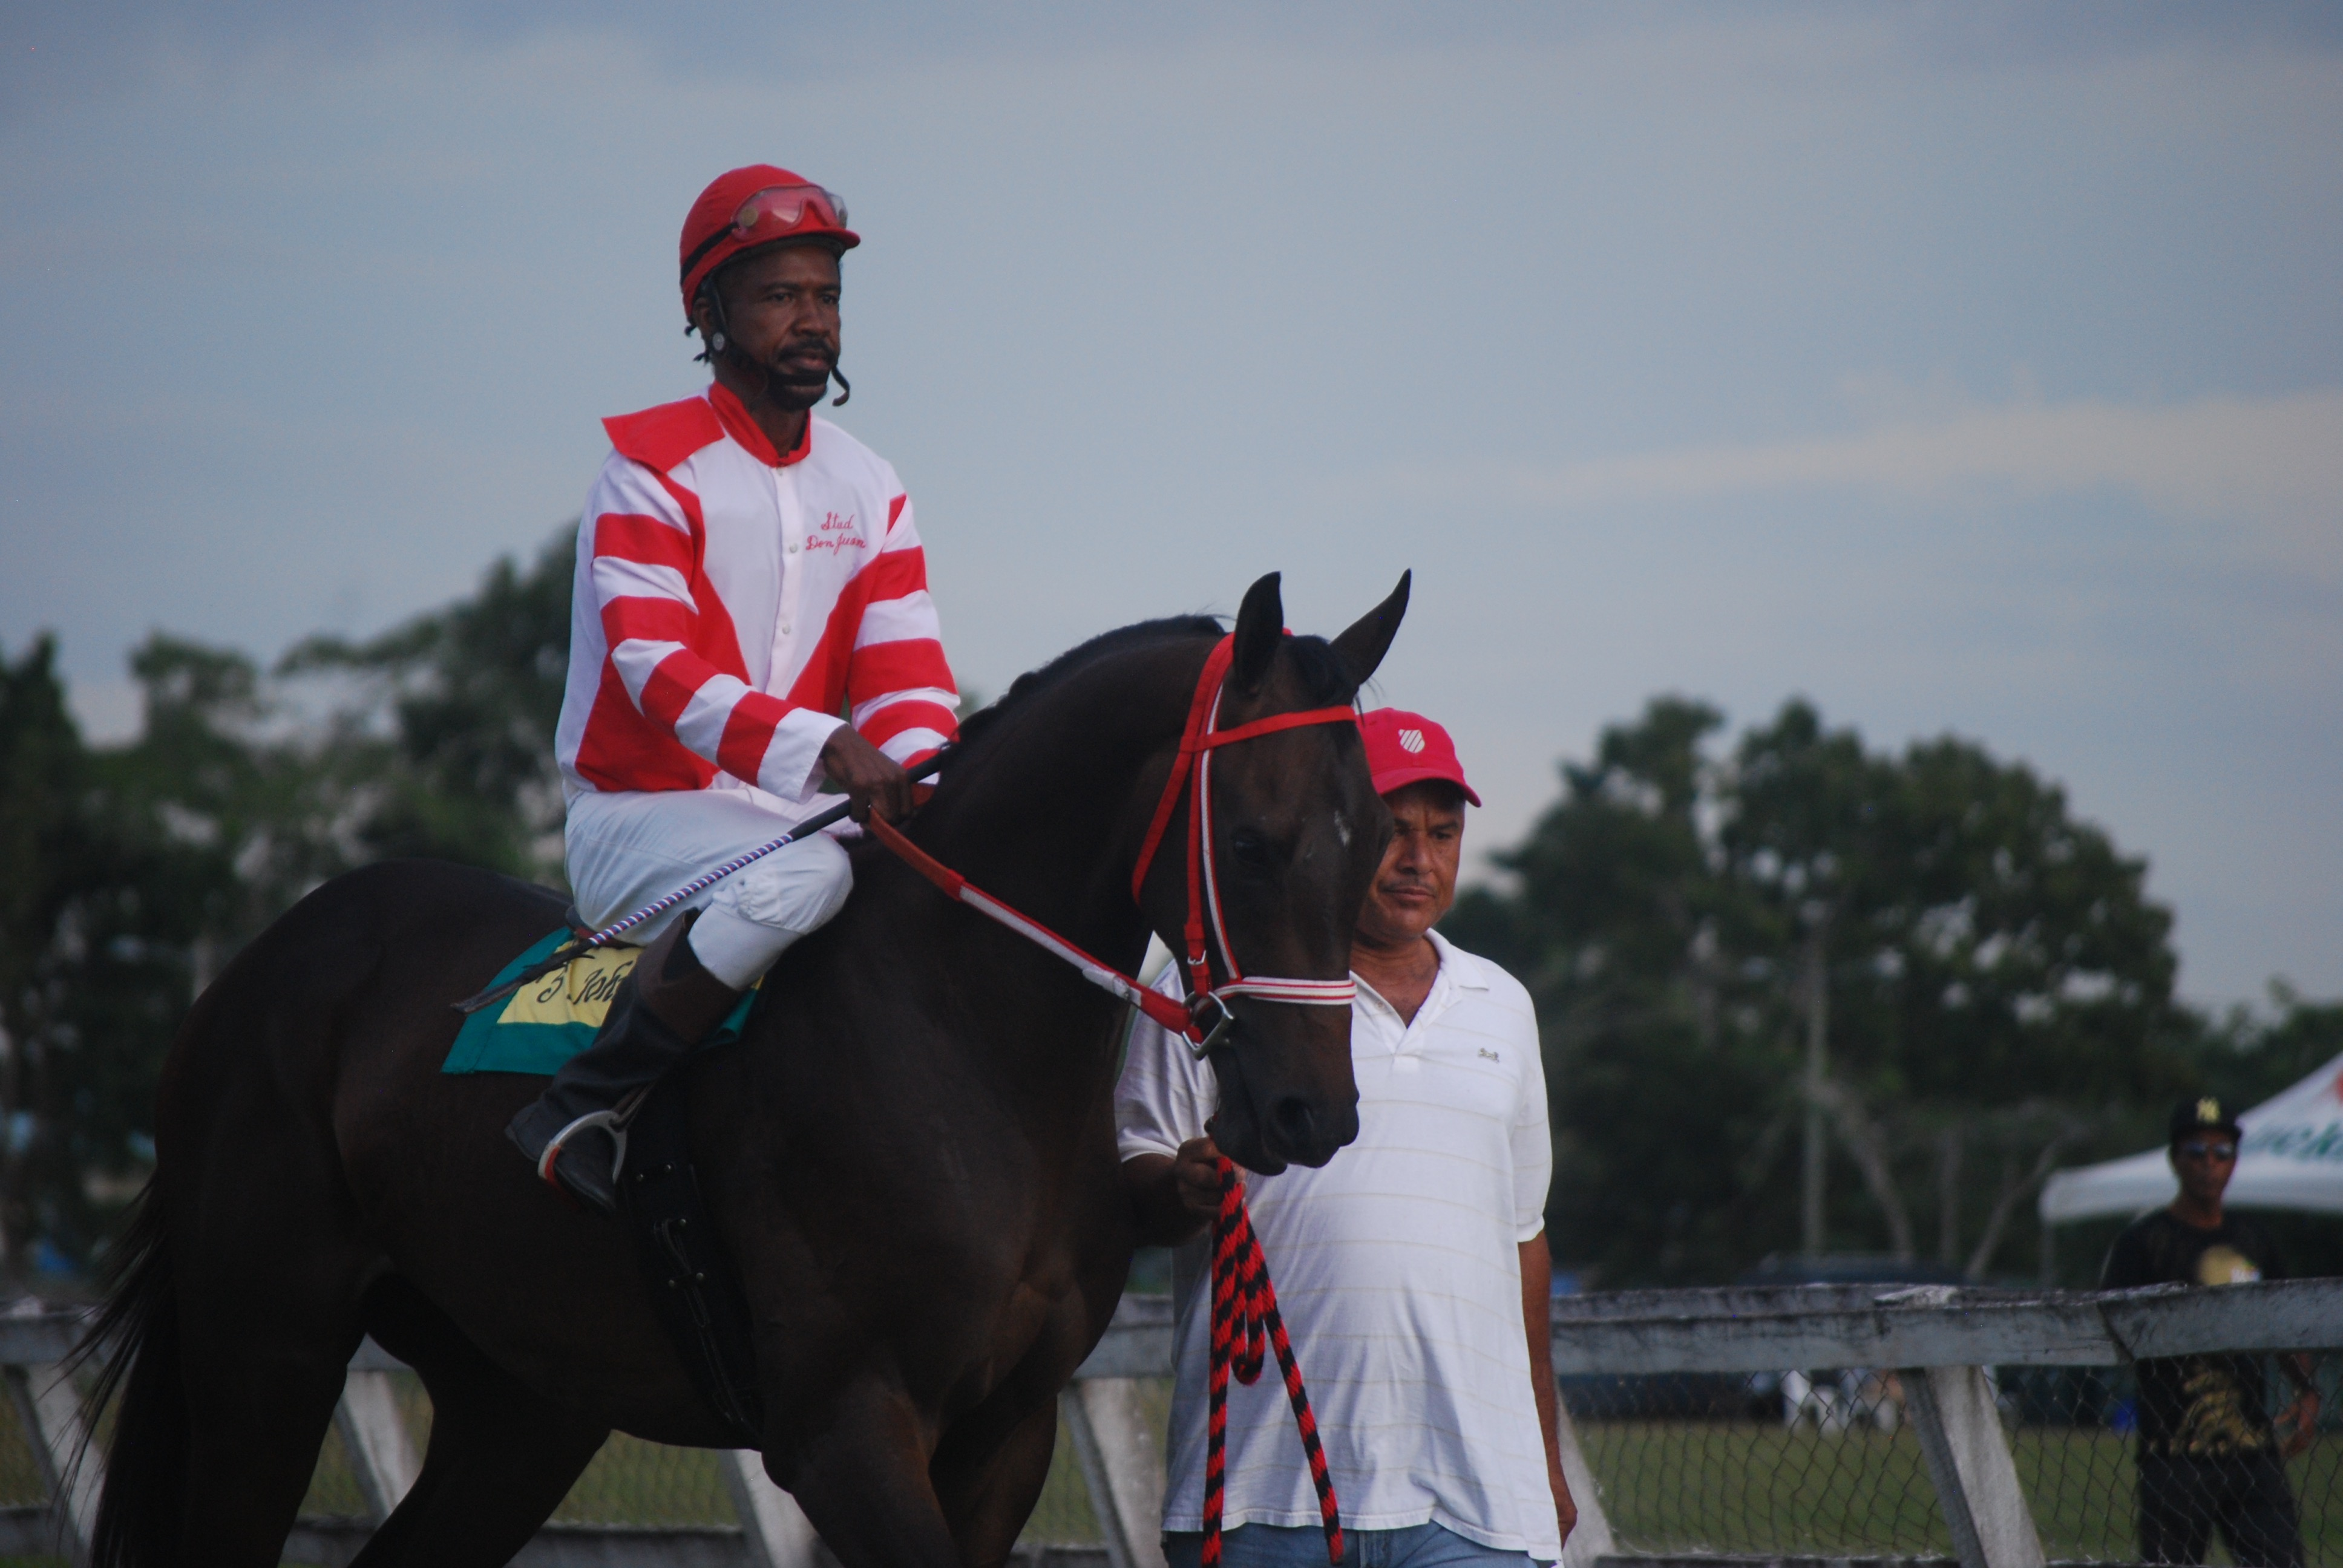 https://horseracingbelize.com/Duke